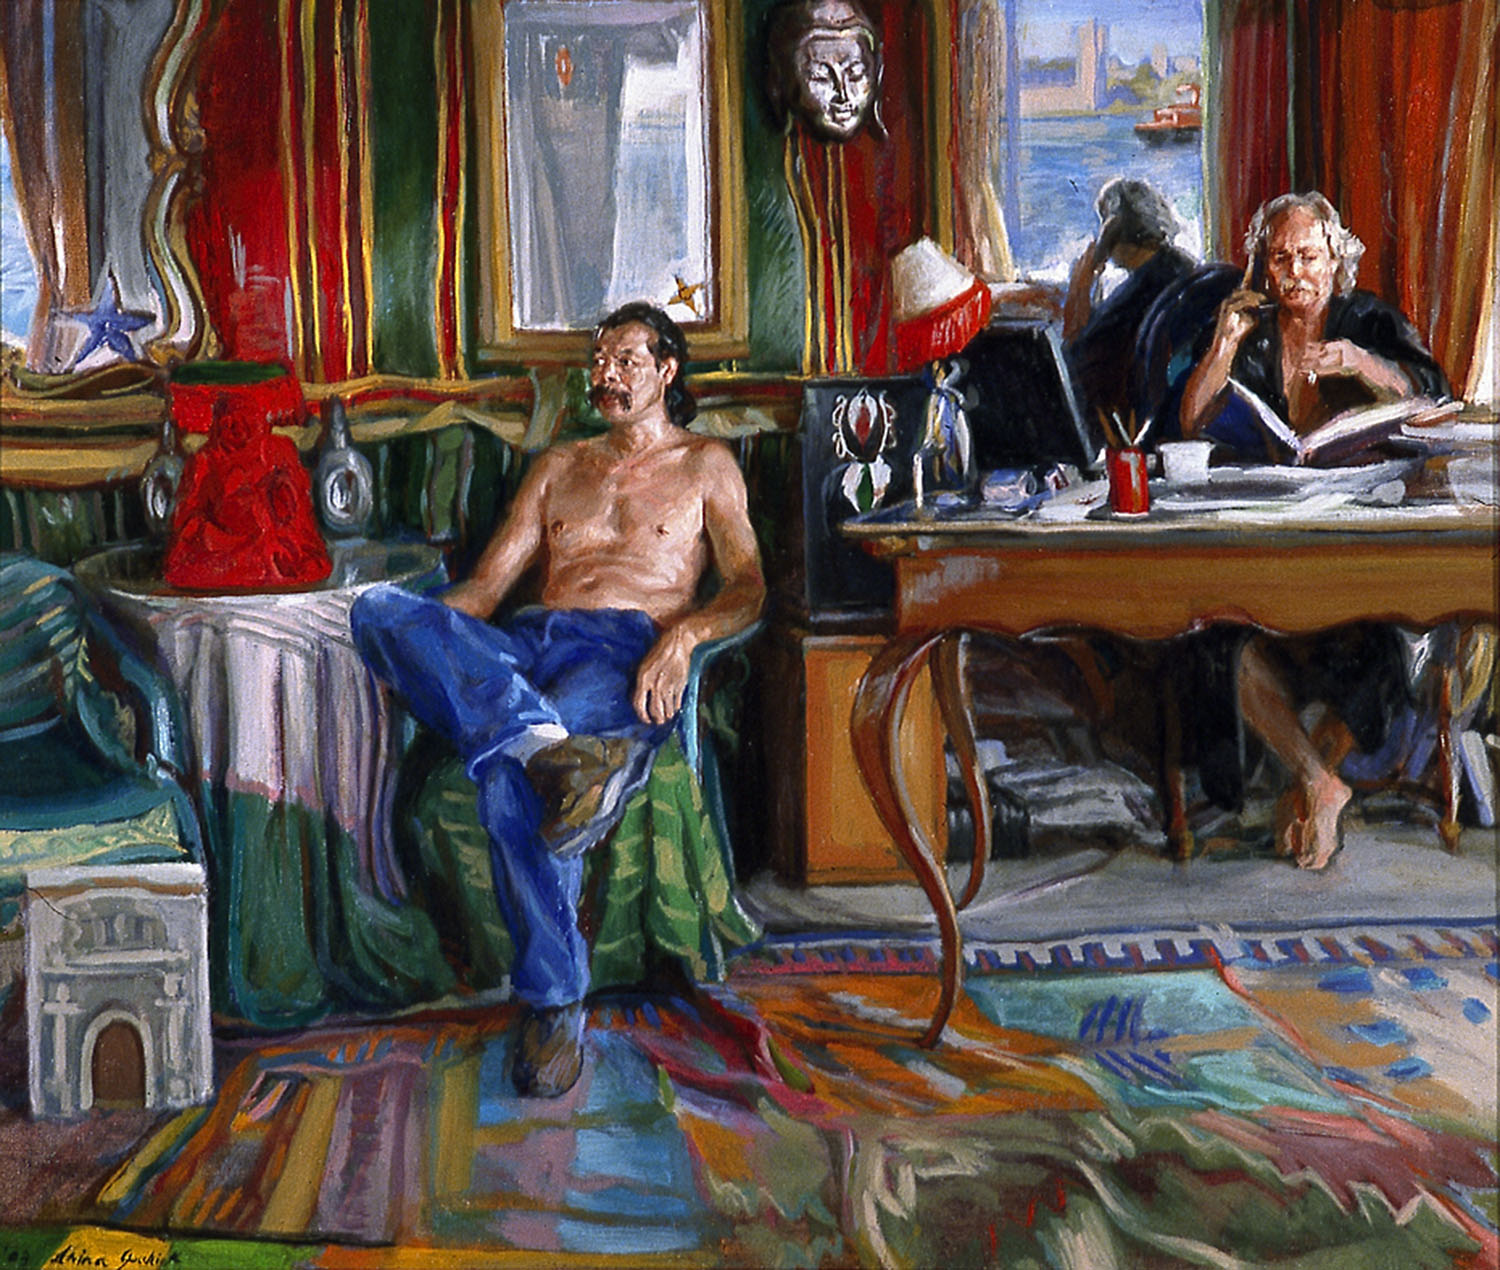 Simone and Hubert 28 x 32 in. oil canvas 2004